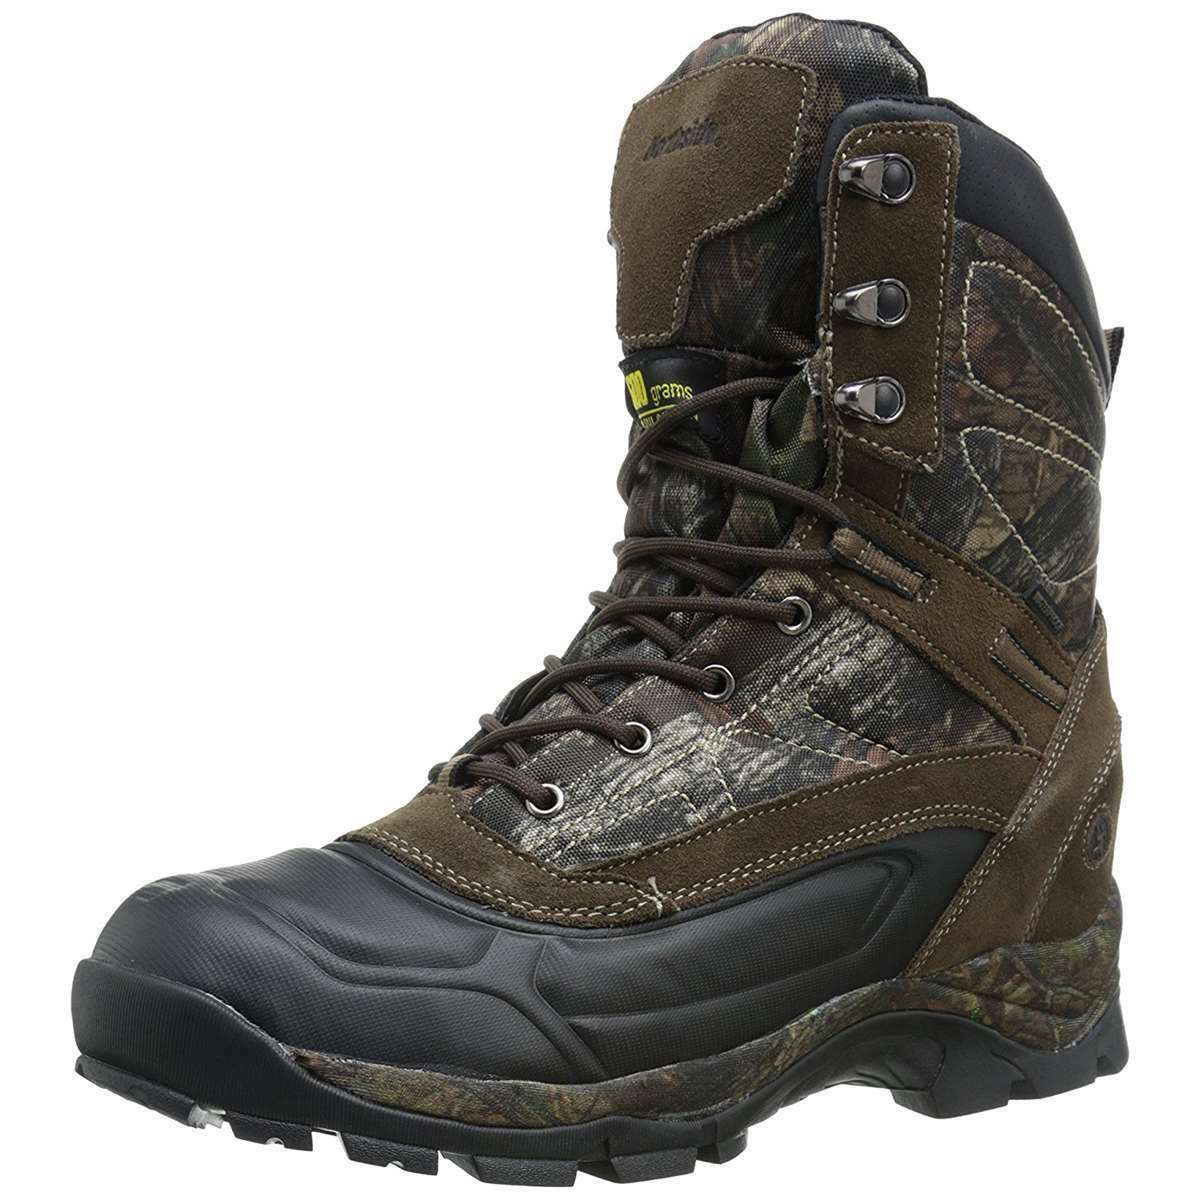 Mens Boots NORTHSIDE BANSHEE 600 WATERPROOF INSULATED HUNTING BOOTS NEW